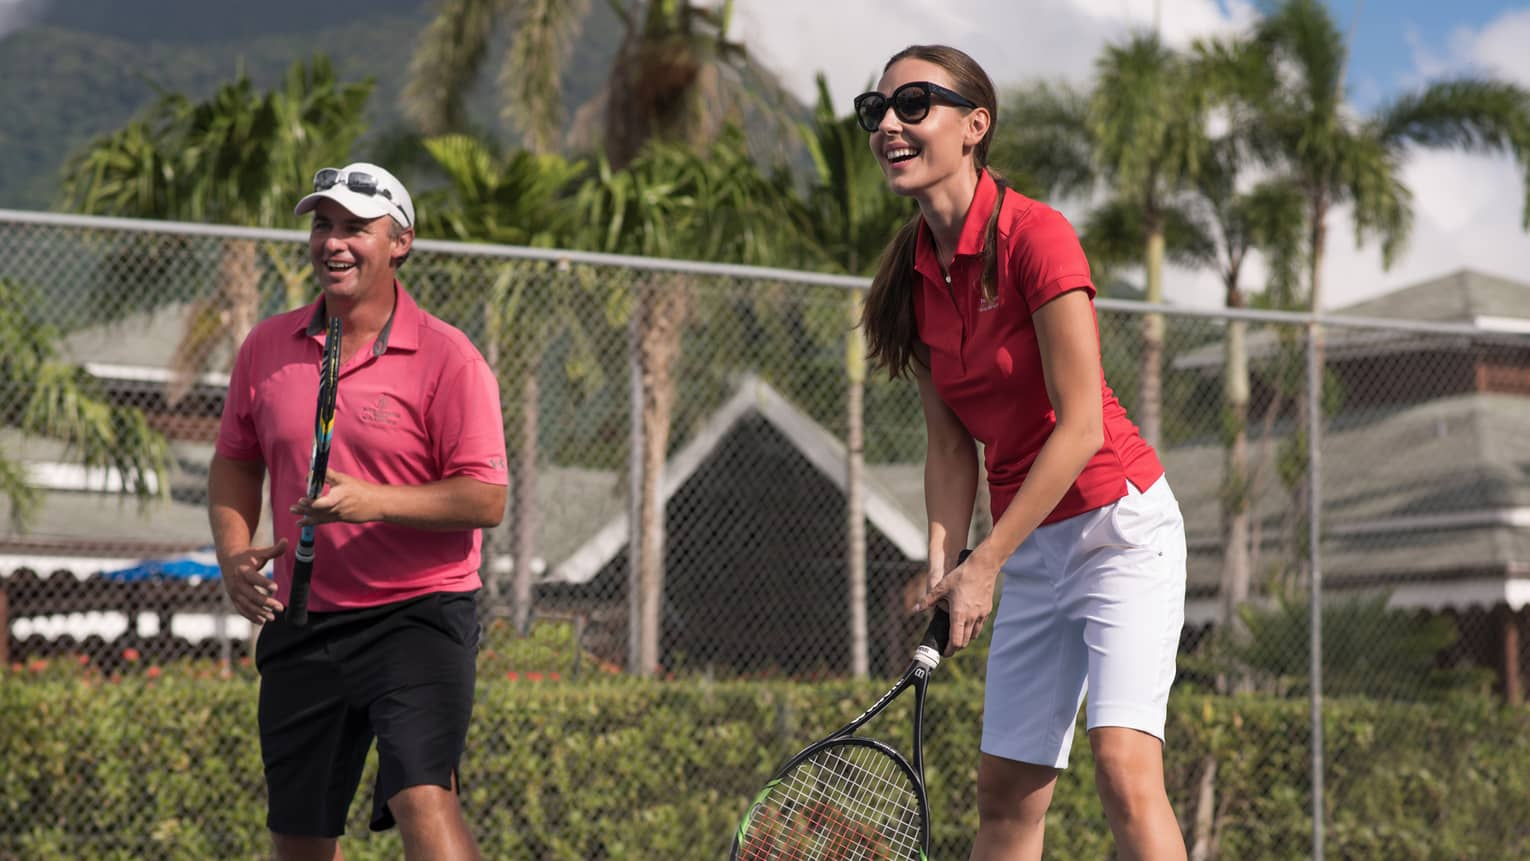 Smiling man and woman with tennis rackets on court